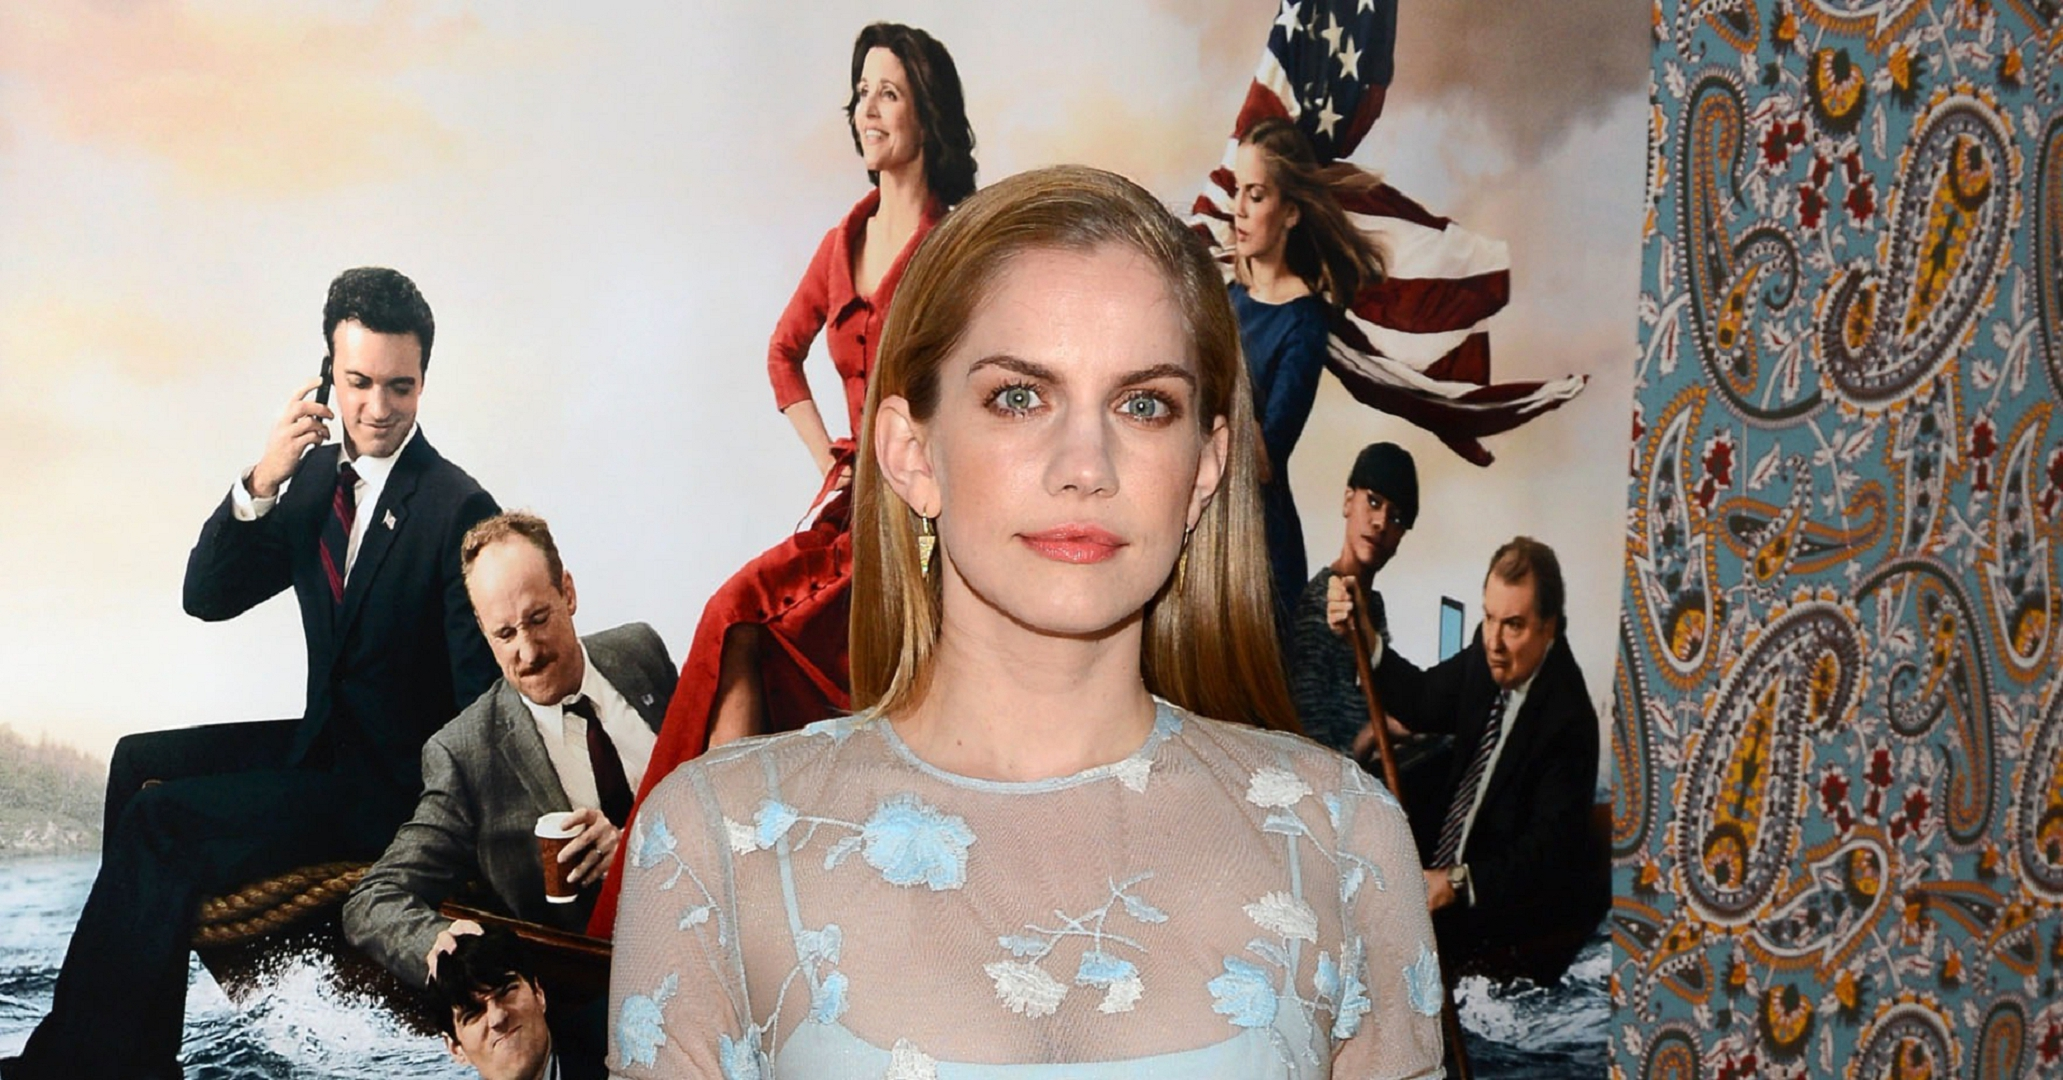 Anna Chlumsky Hd Background